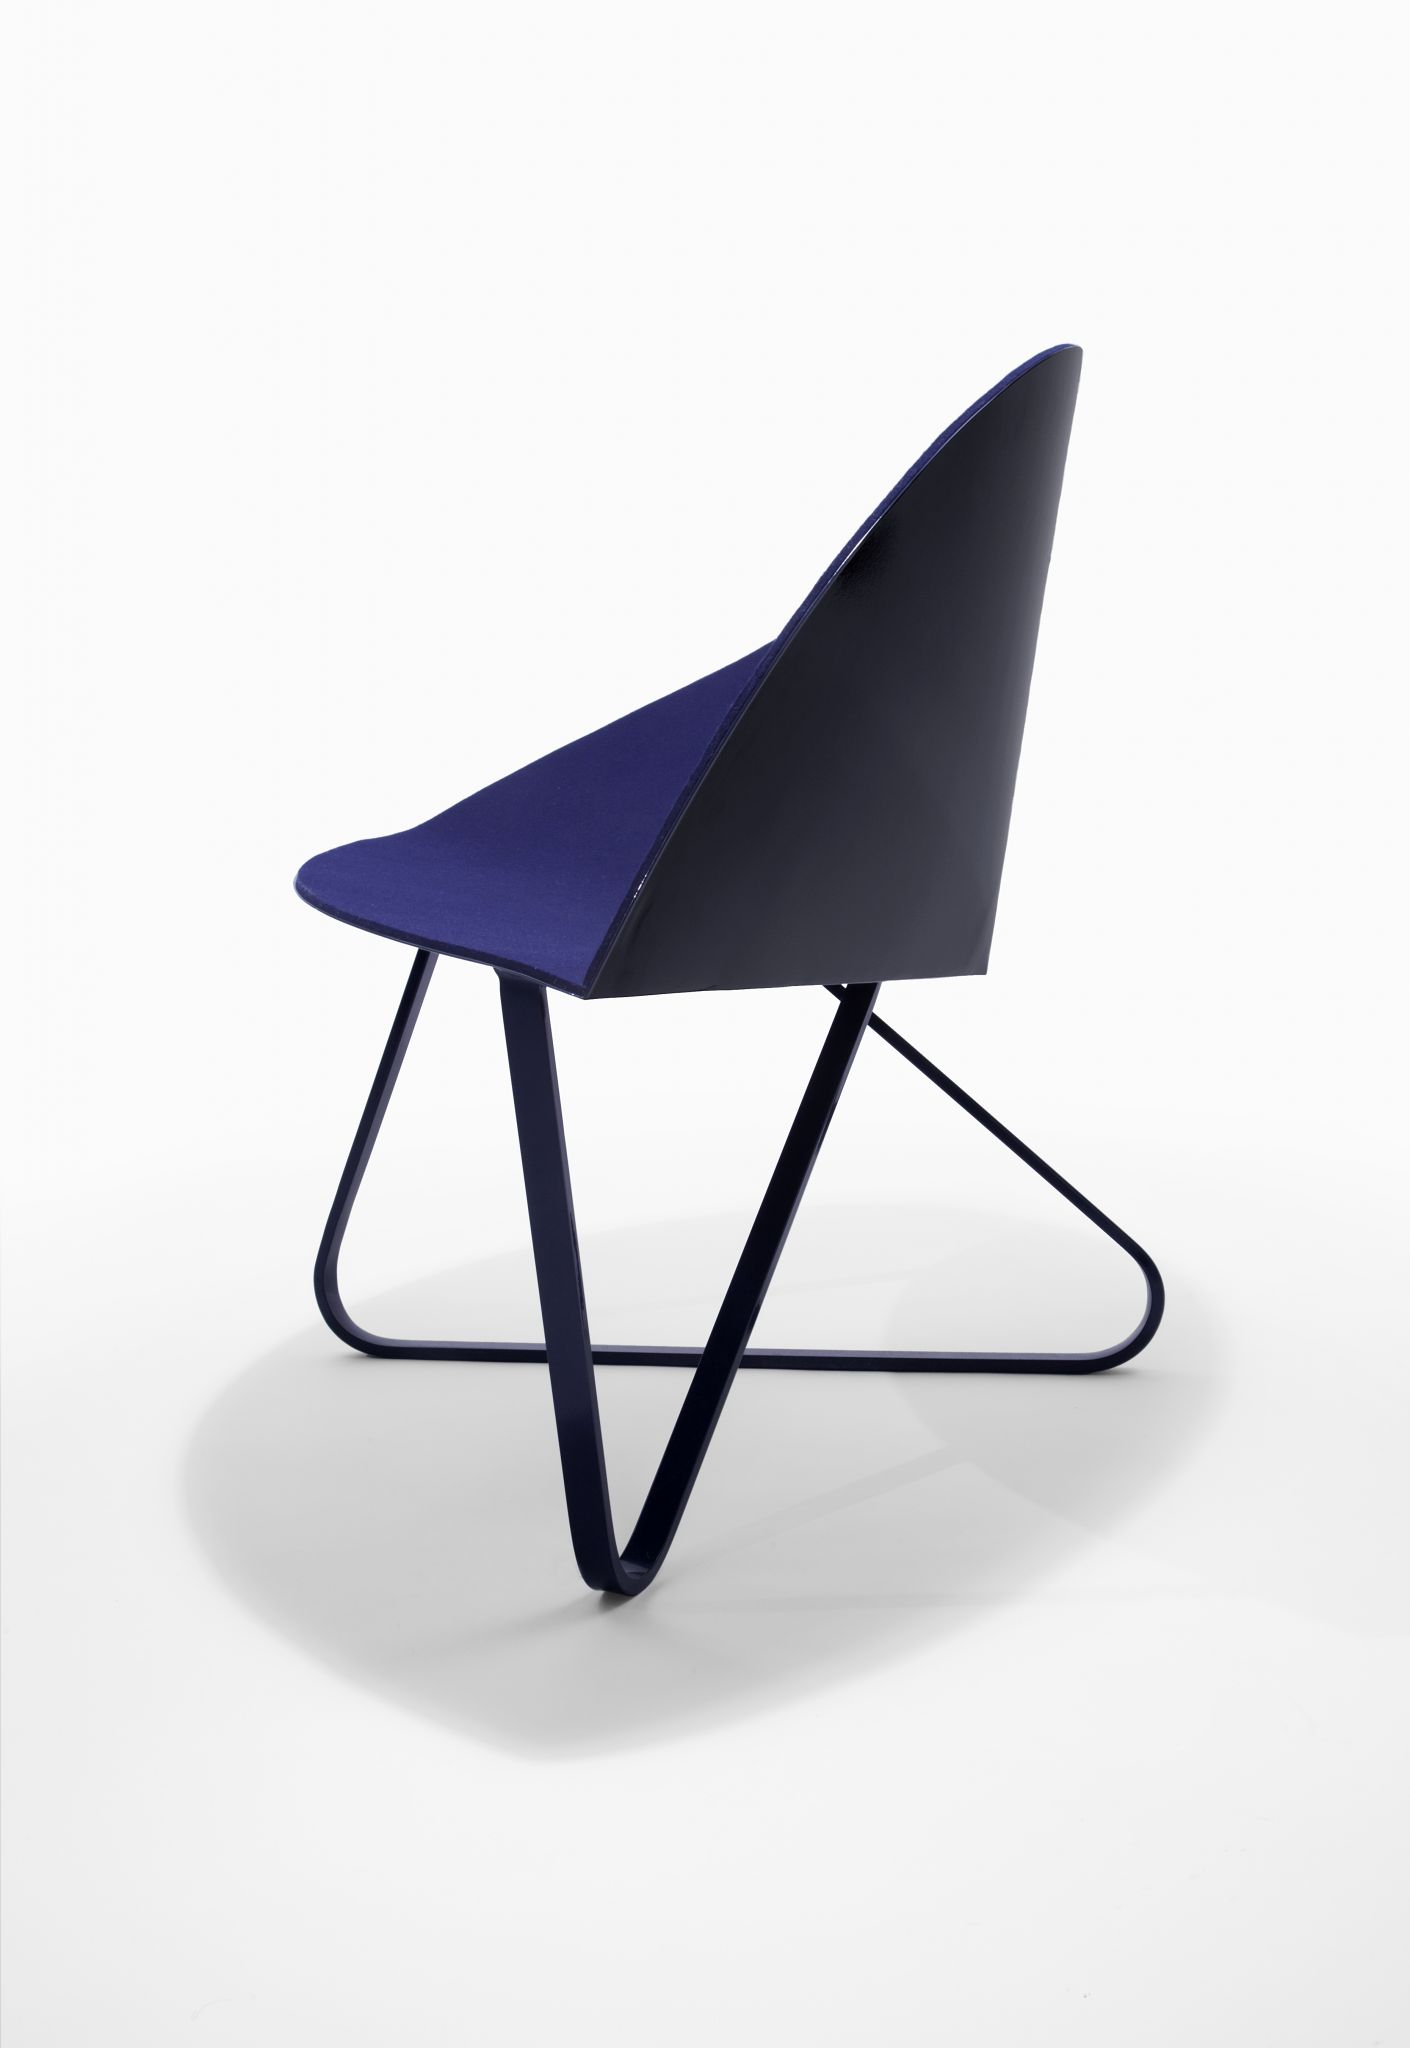 Curved Lounge Chair - <p>In continuation of my research of planar material, I refined a single broad bend in creating the shell for a lounge chair. Cutting a pie shape away from a circle and curving it to connect the edges creates the three dimensional chair shell. The wide seat invites users to have freedom with their posture, and the long line of the outside curve functions as a armrest. The form of the legs echos the chair shell's perimeter.</p>  | Matter of Stuff